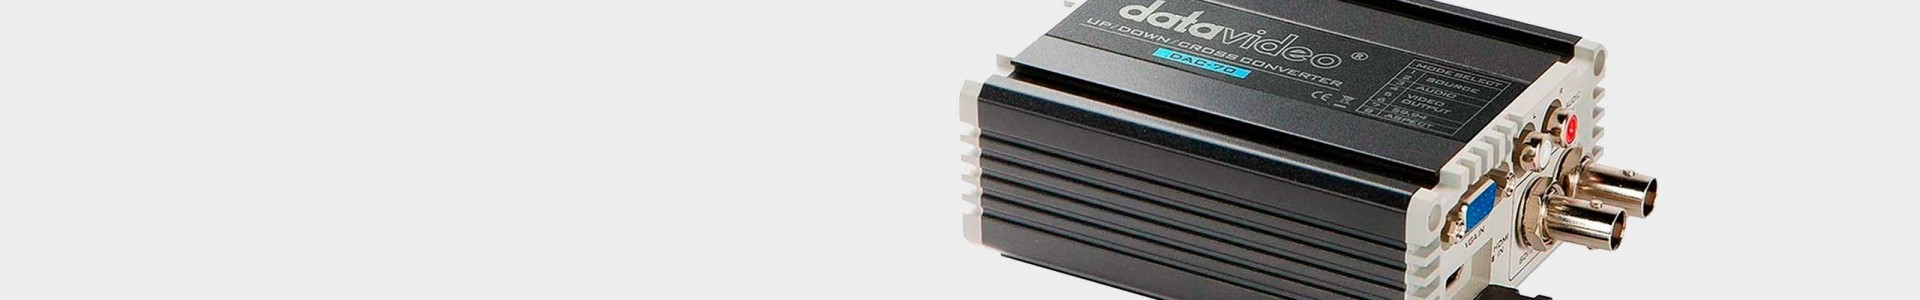 Datavideo converters at Avacab - Quality at the best price